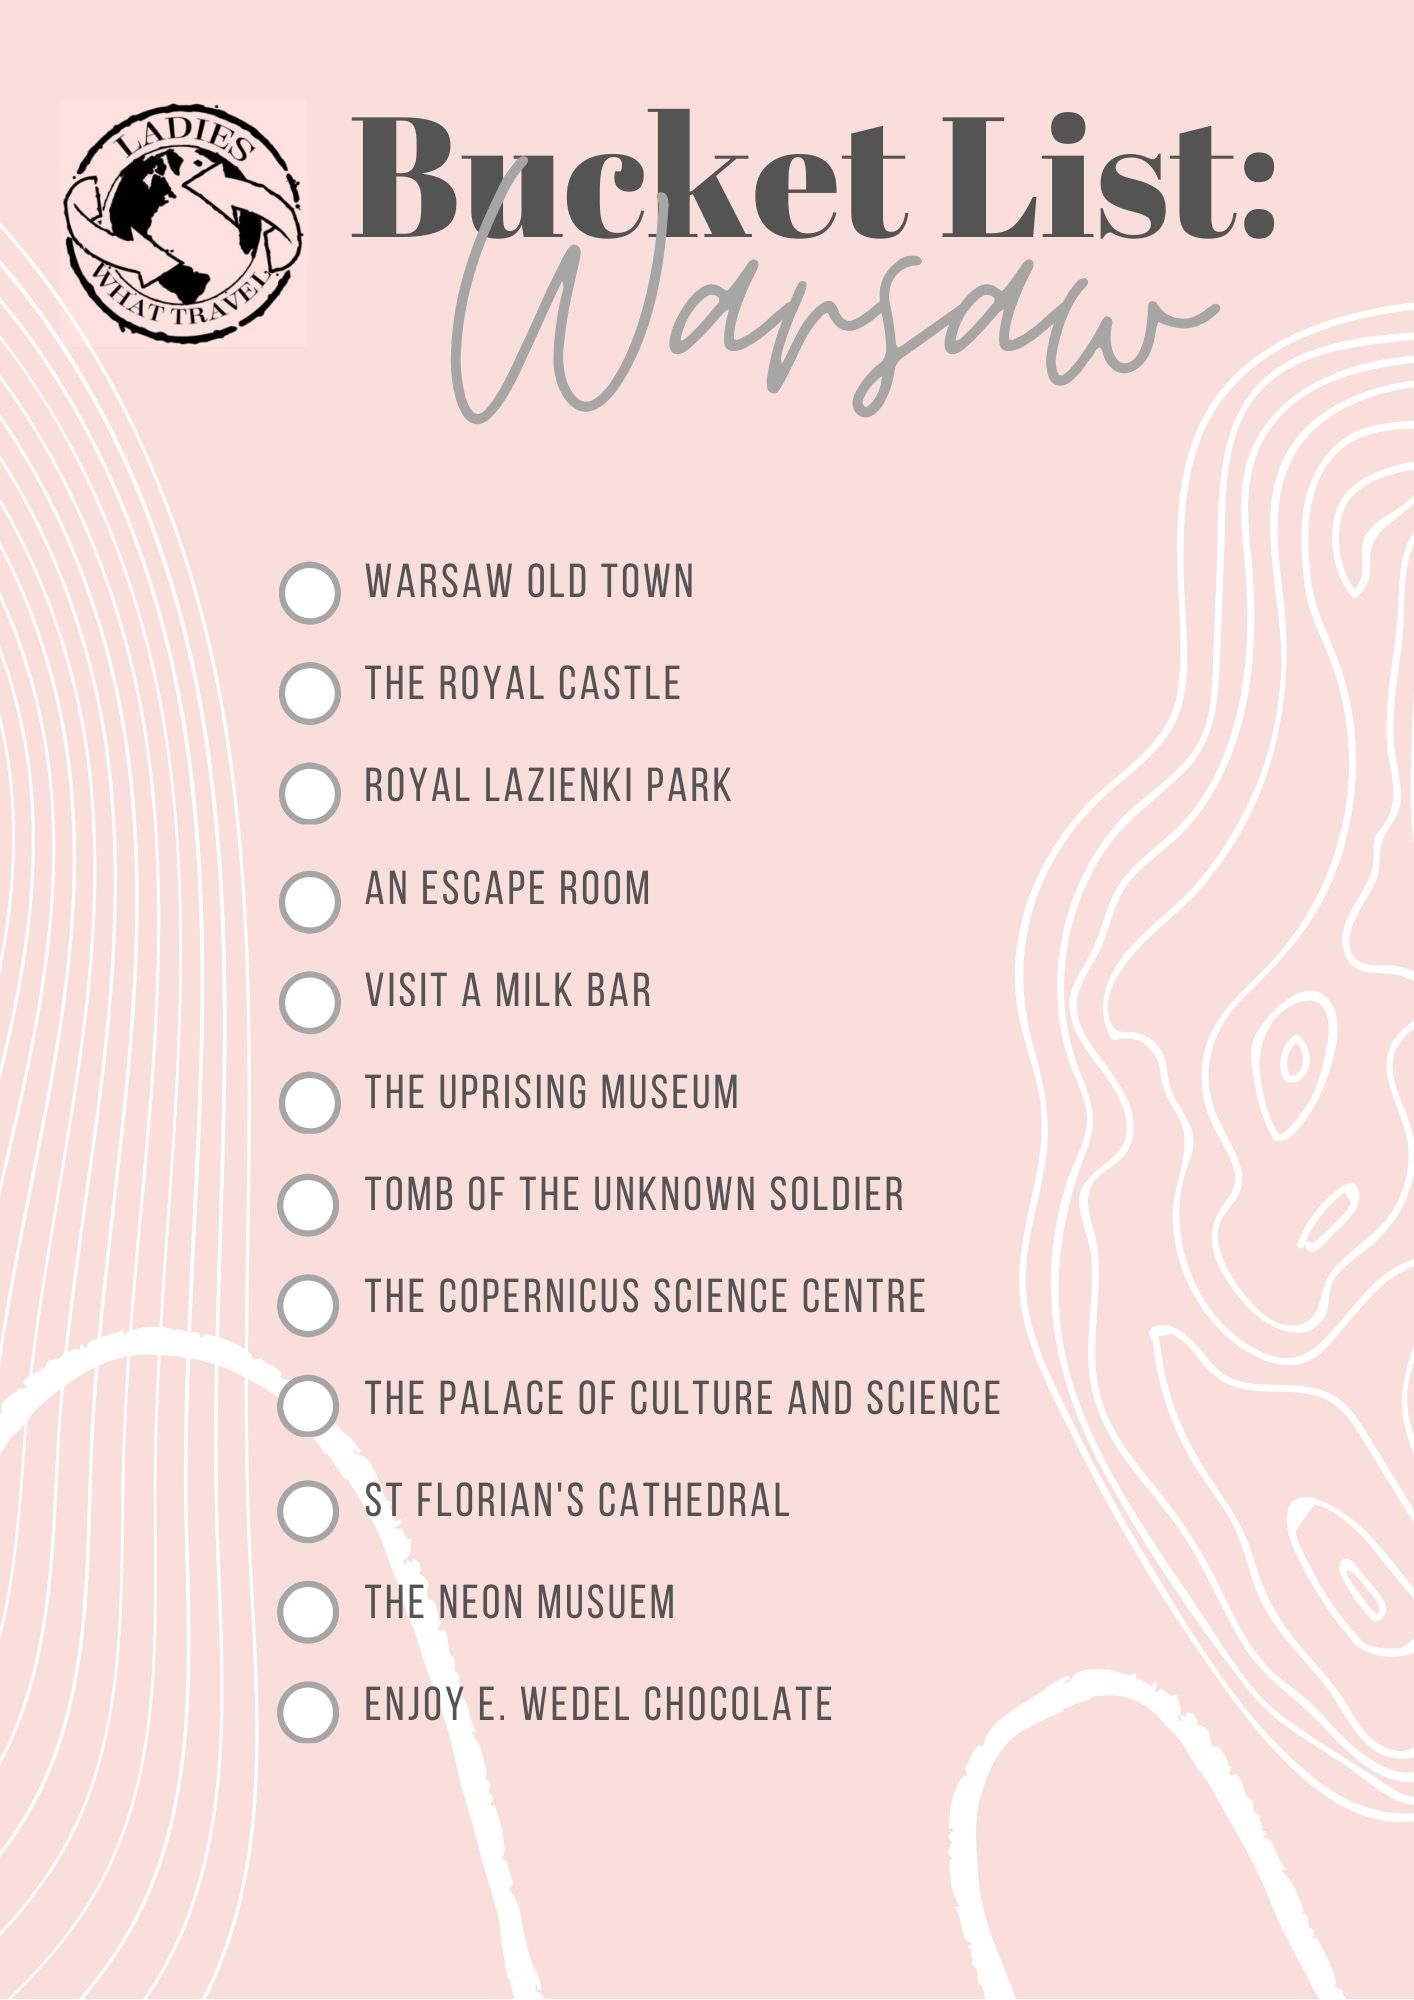 things to do in warsaw